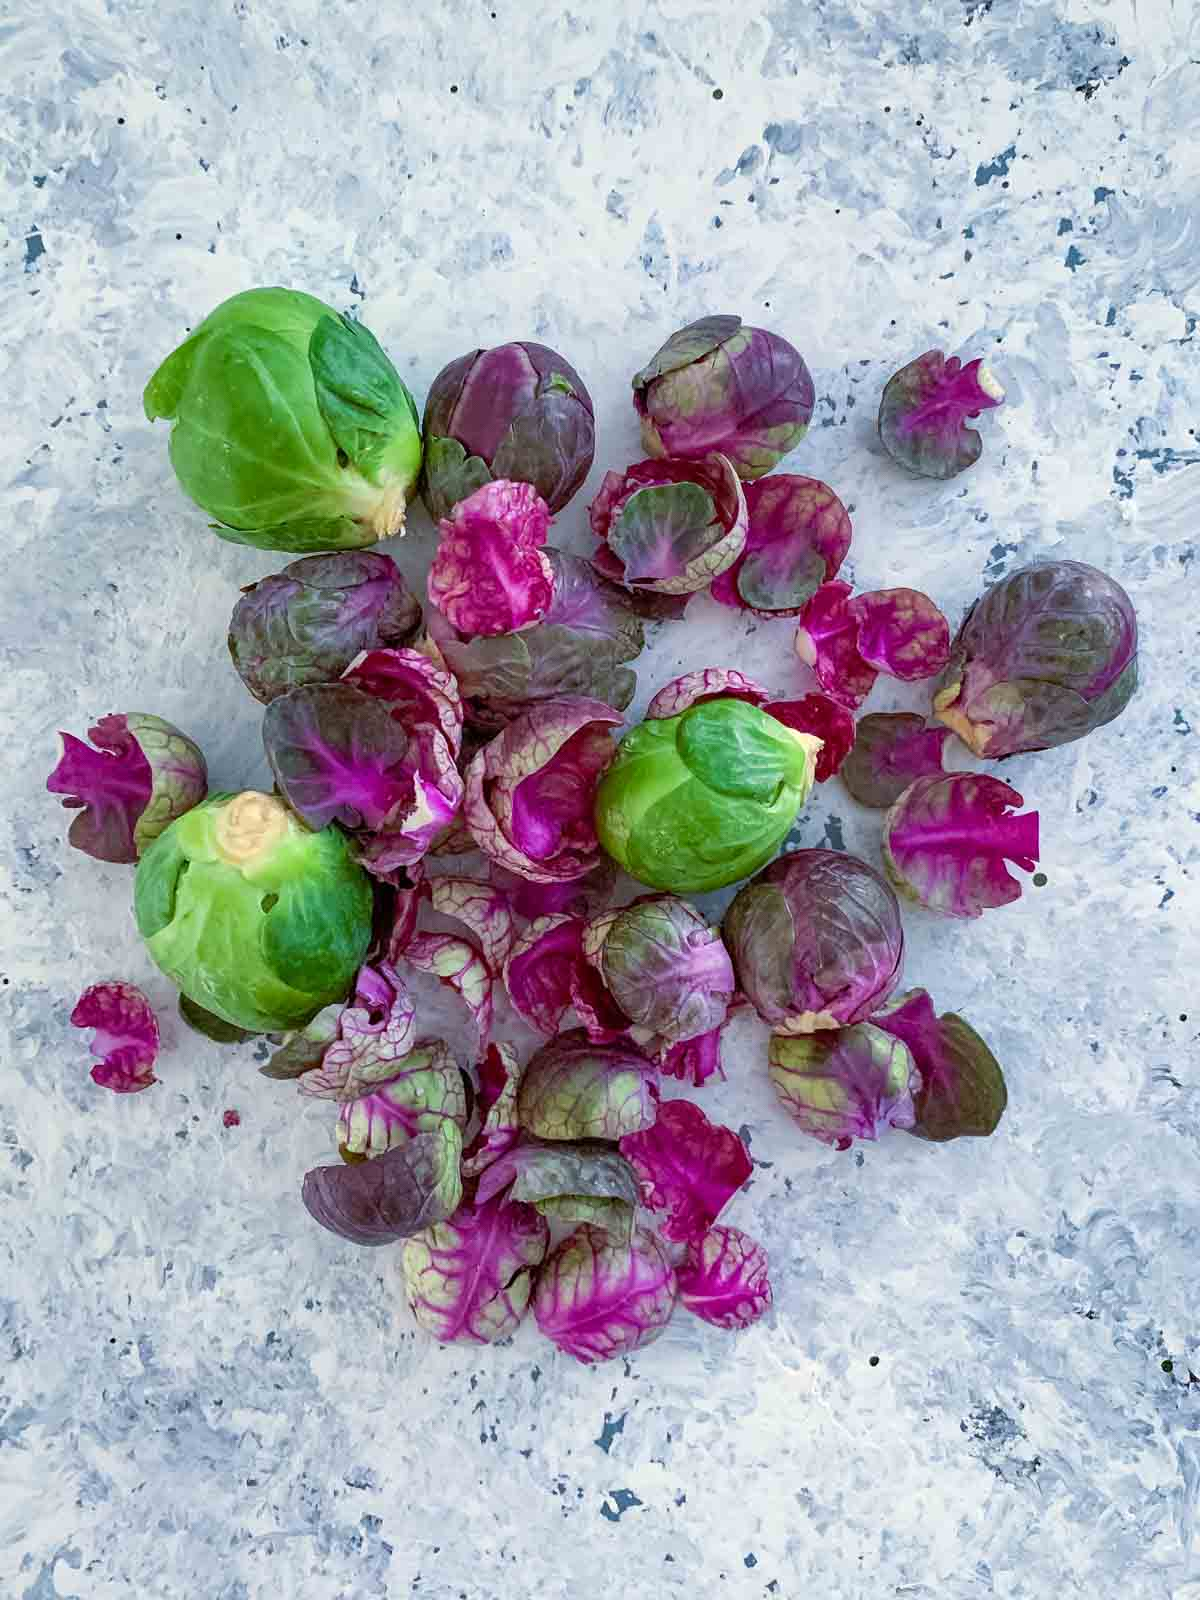 Green and purple Brussels sprouts